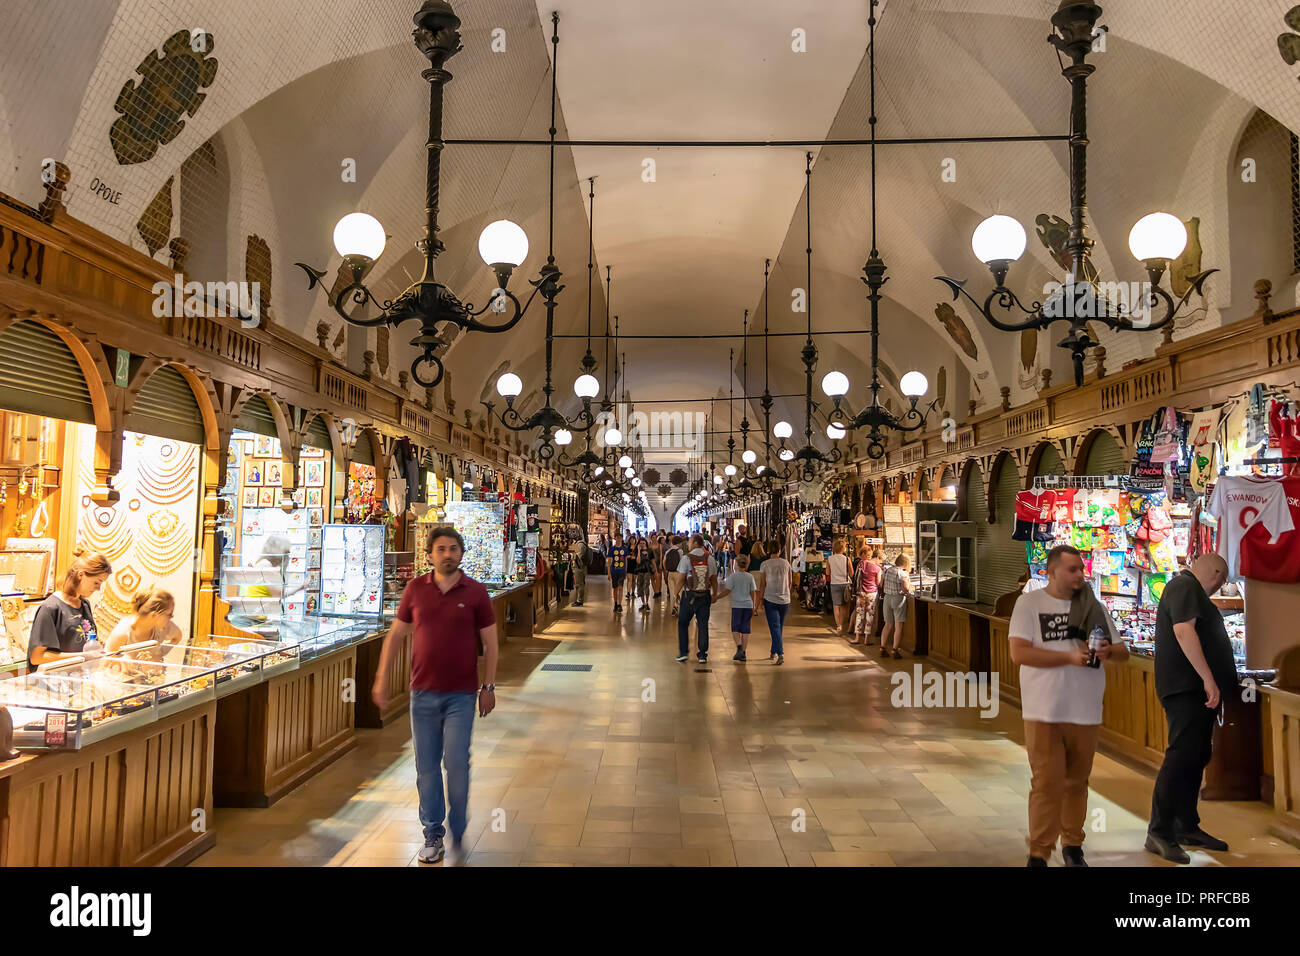 Krakow, Poland June 5, 2018: Interior of gallery of Cloth Hall with visitors walking along the stalls. Cloth Hall is the central feature of Main Marke - Stock Image